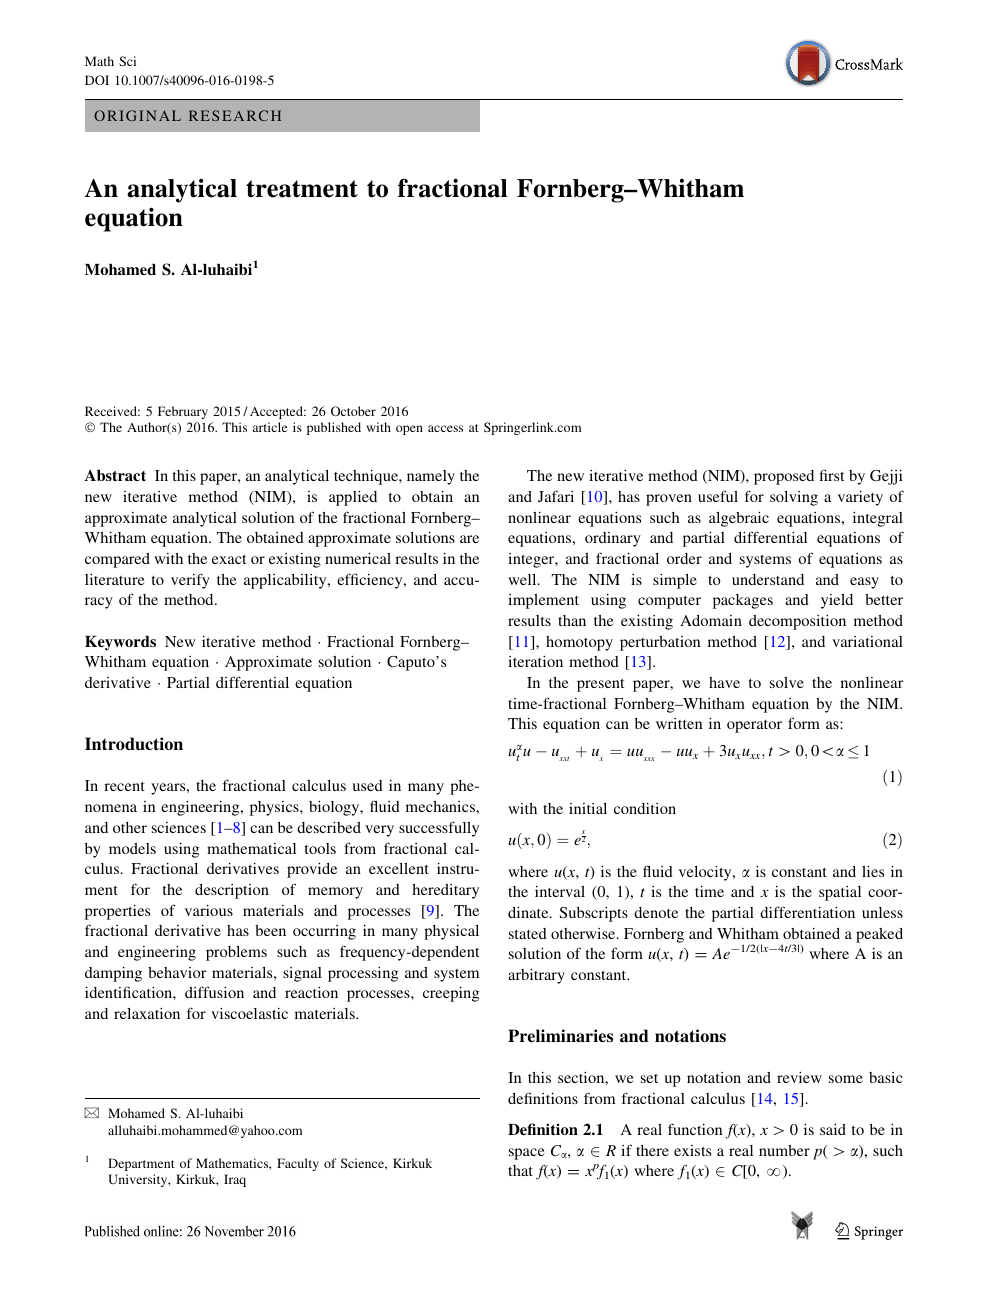 An analytical treatment to fractional Fornberg–Whitham